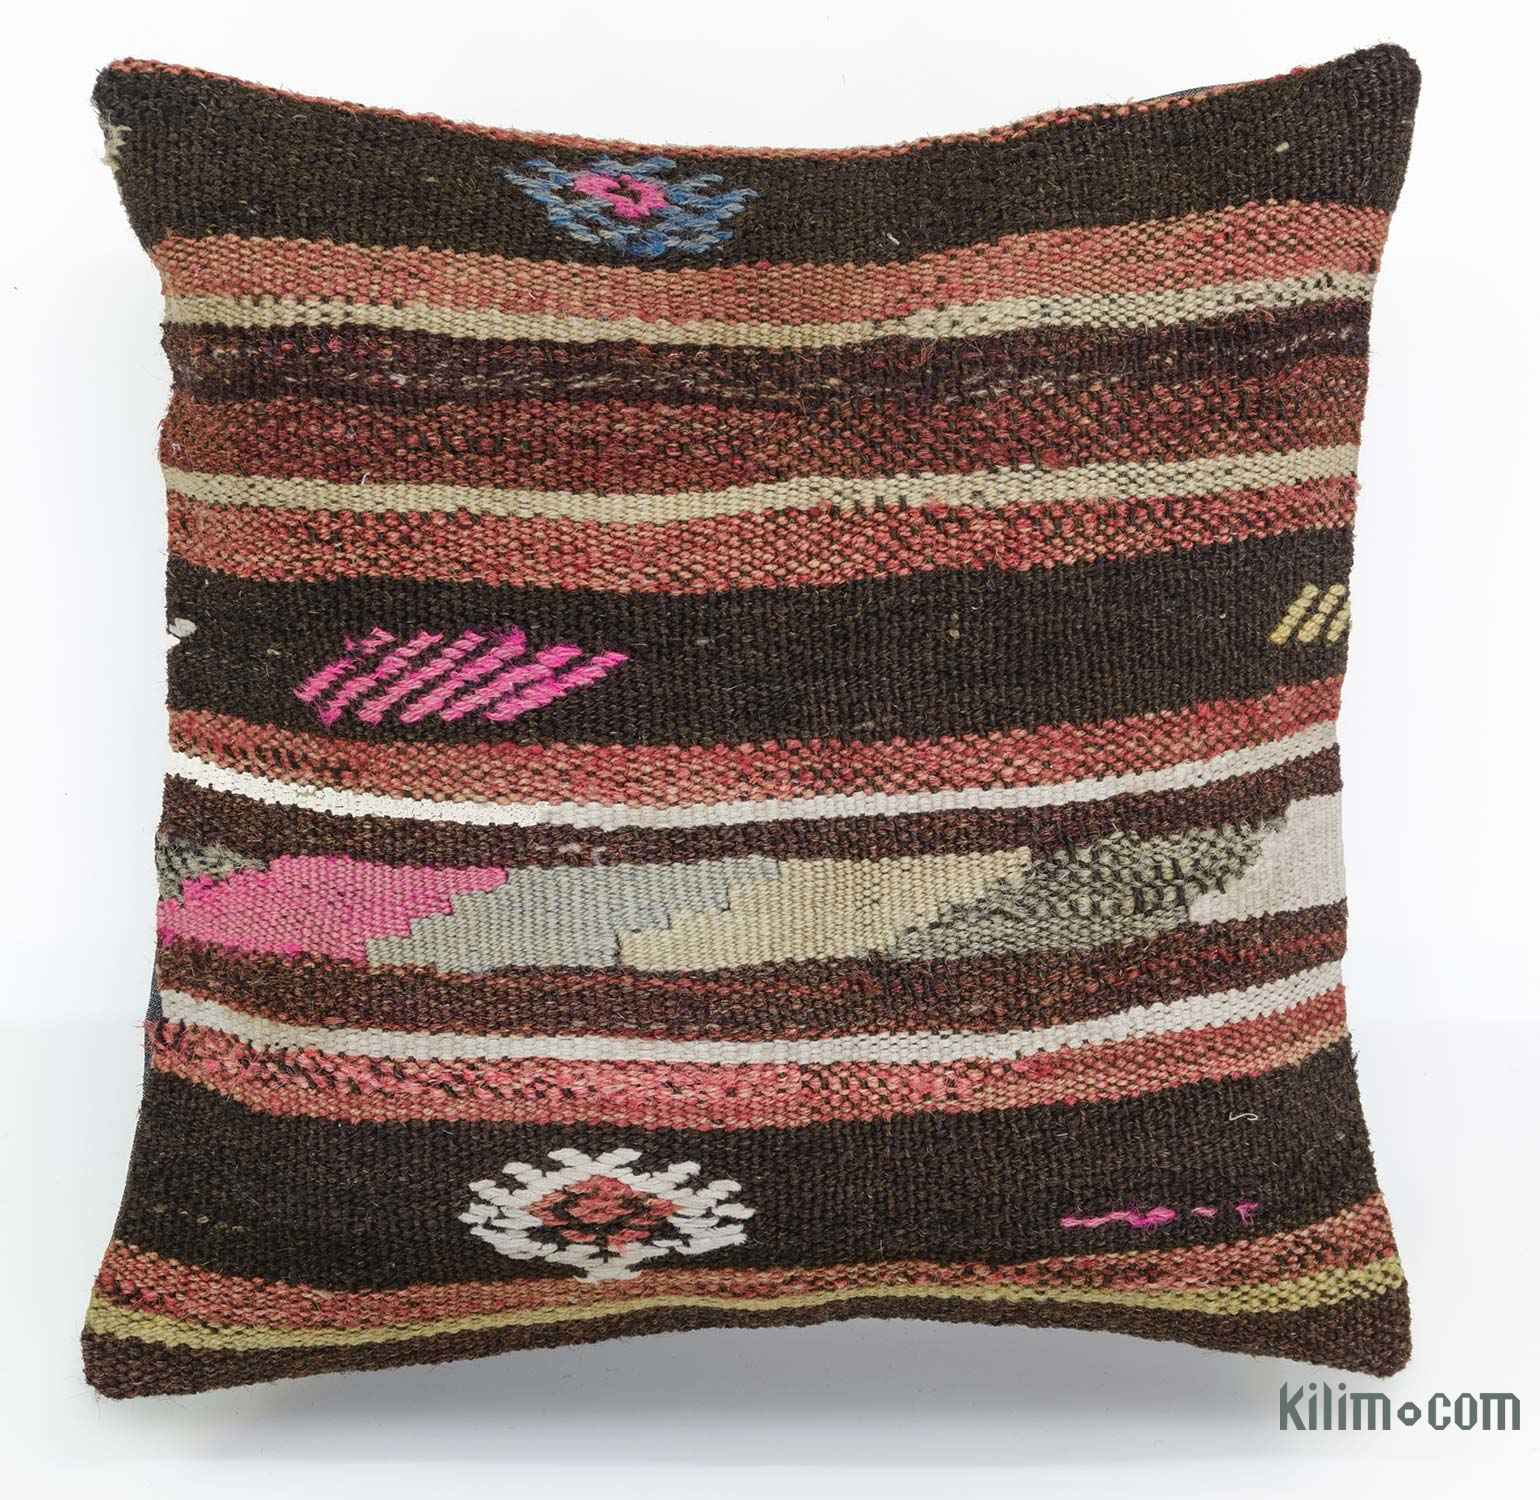 pillows washed designer pink shoppe pillow cushion interiors kilim copy products in amber web